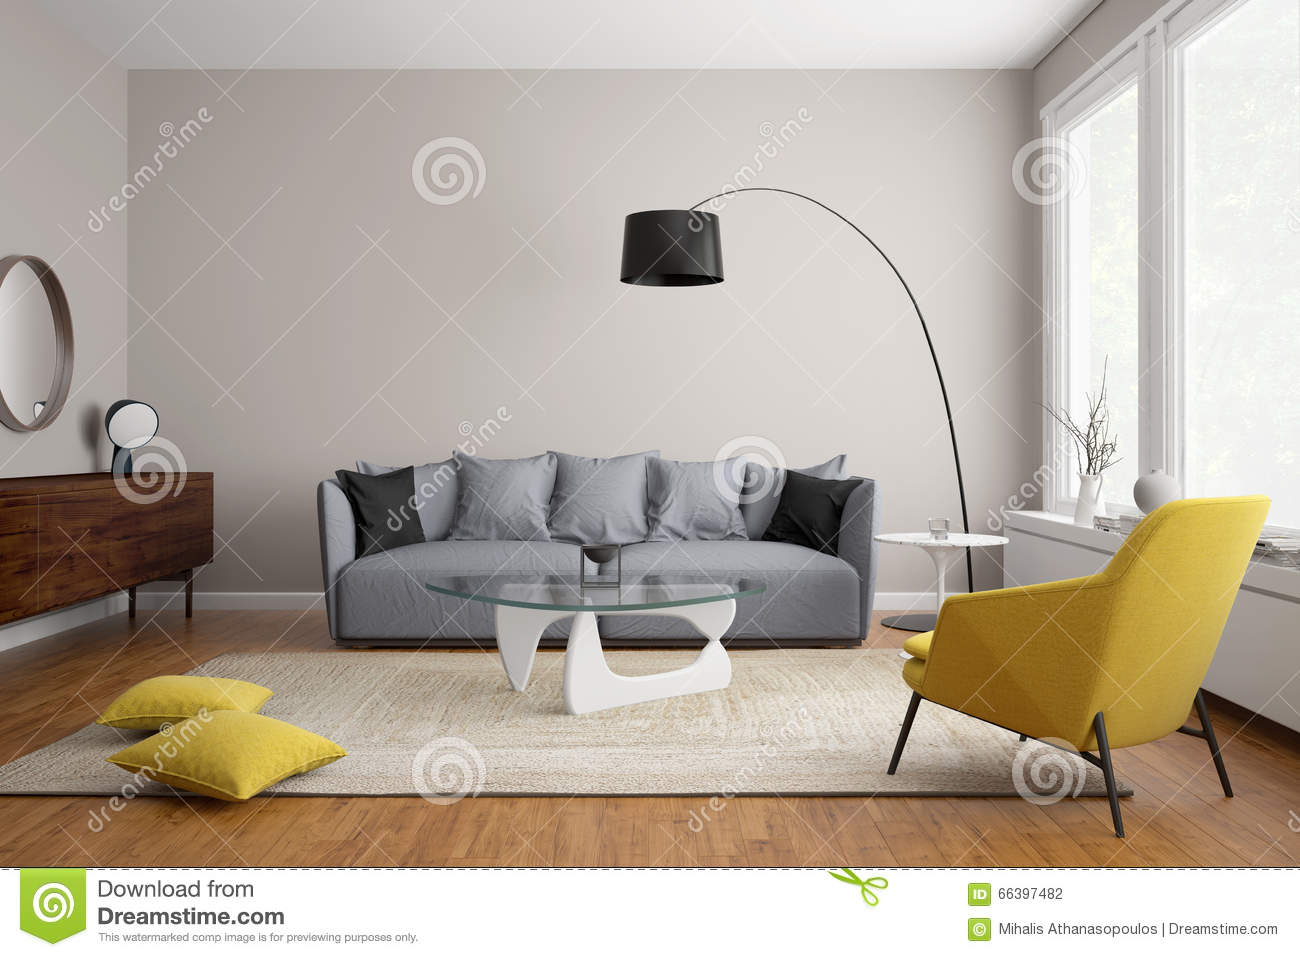 modern scandinavian living room with grey sofa stock illustration illustration of lifestyle. Black Bedroom Furniture Sets. Home Design Ideas